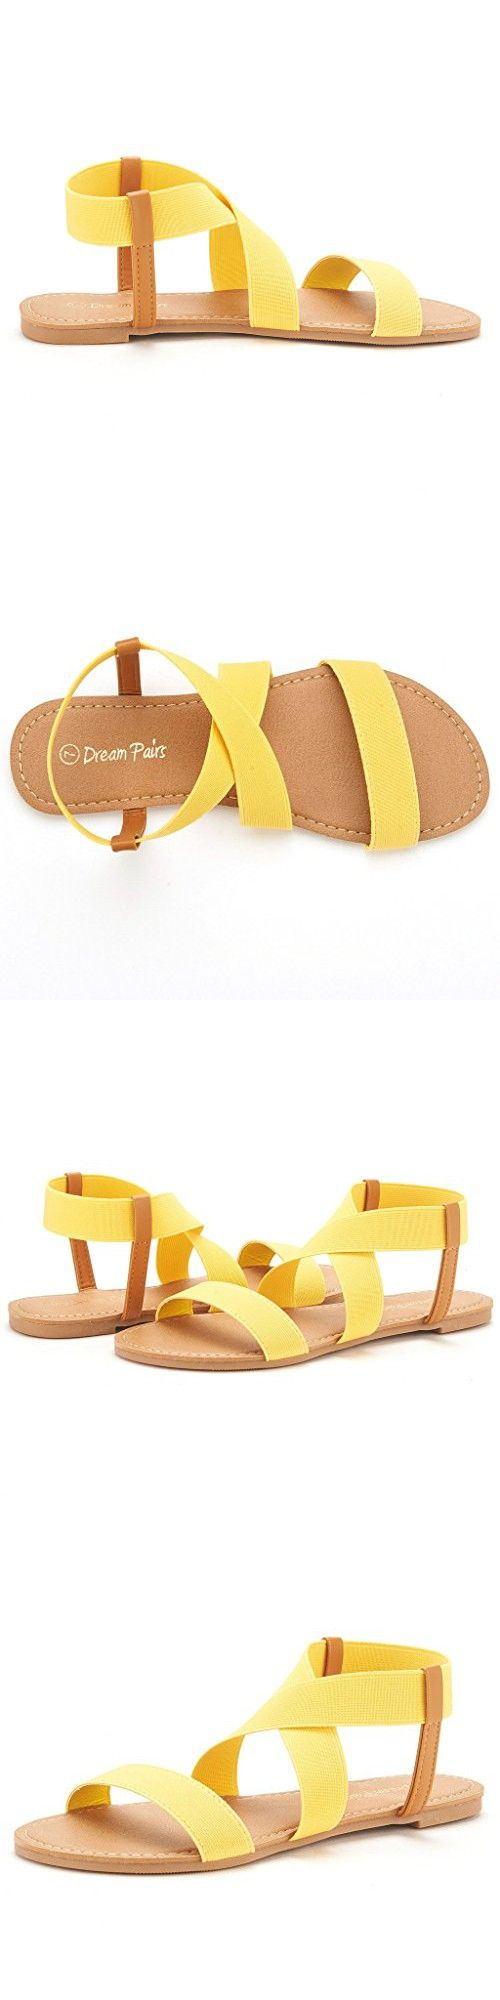 DREAM PAIRS ELASTICA Women Summer Fashion Design Open -Toe Elastic Ankle Strap Gladiator Flat Sandals YELLOW SIZE 11